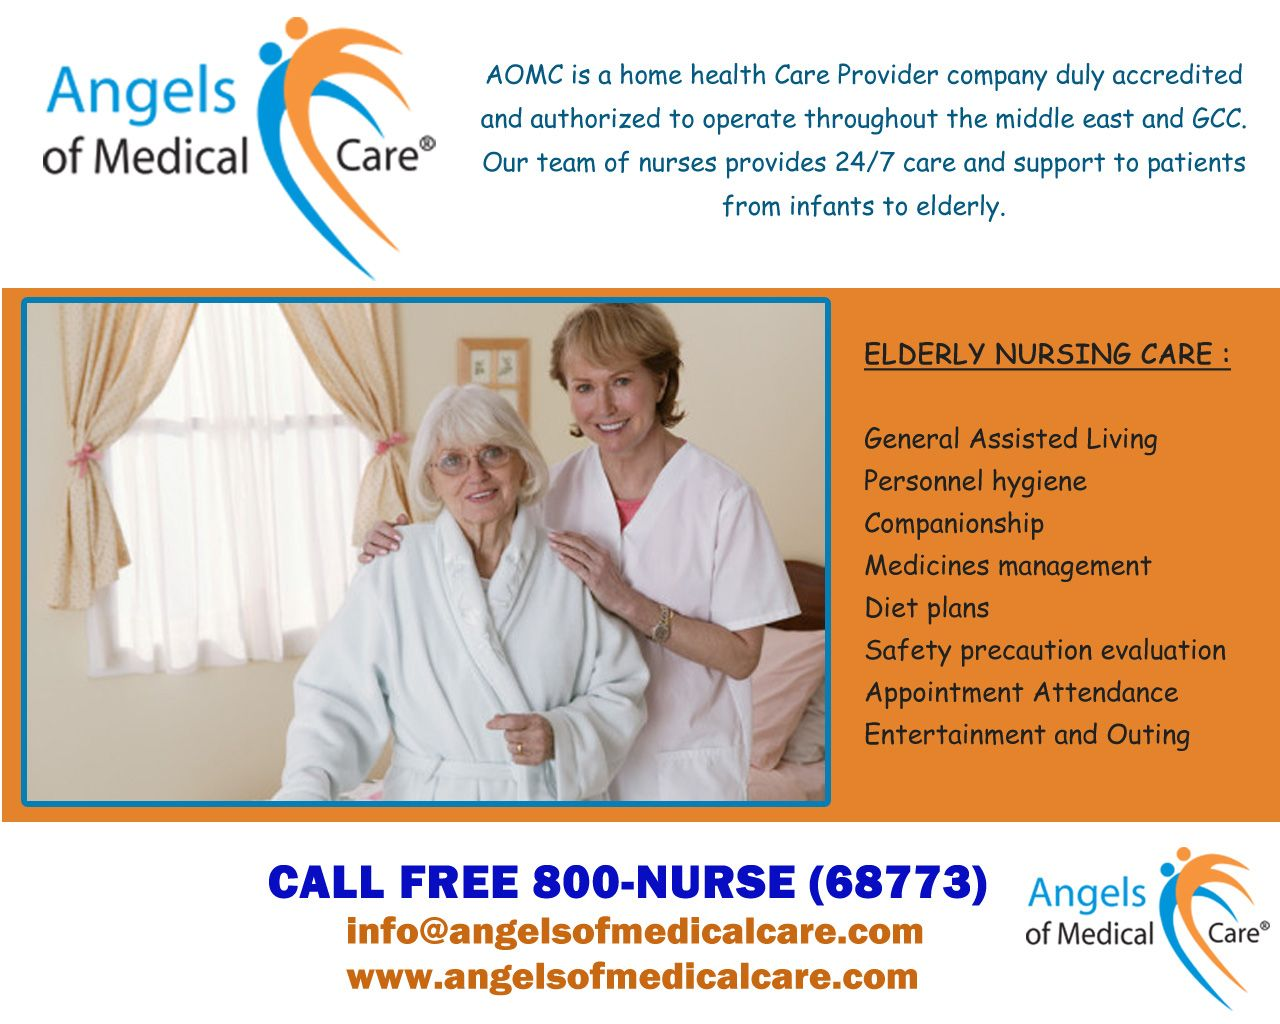 Angels Of Medical Care Offers Best Home Care And Nursing Care In Dubai We Are Specialized In Home Nursing Eld Elderly Home Care Nursing Care Home Health Care